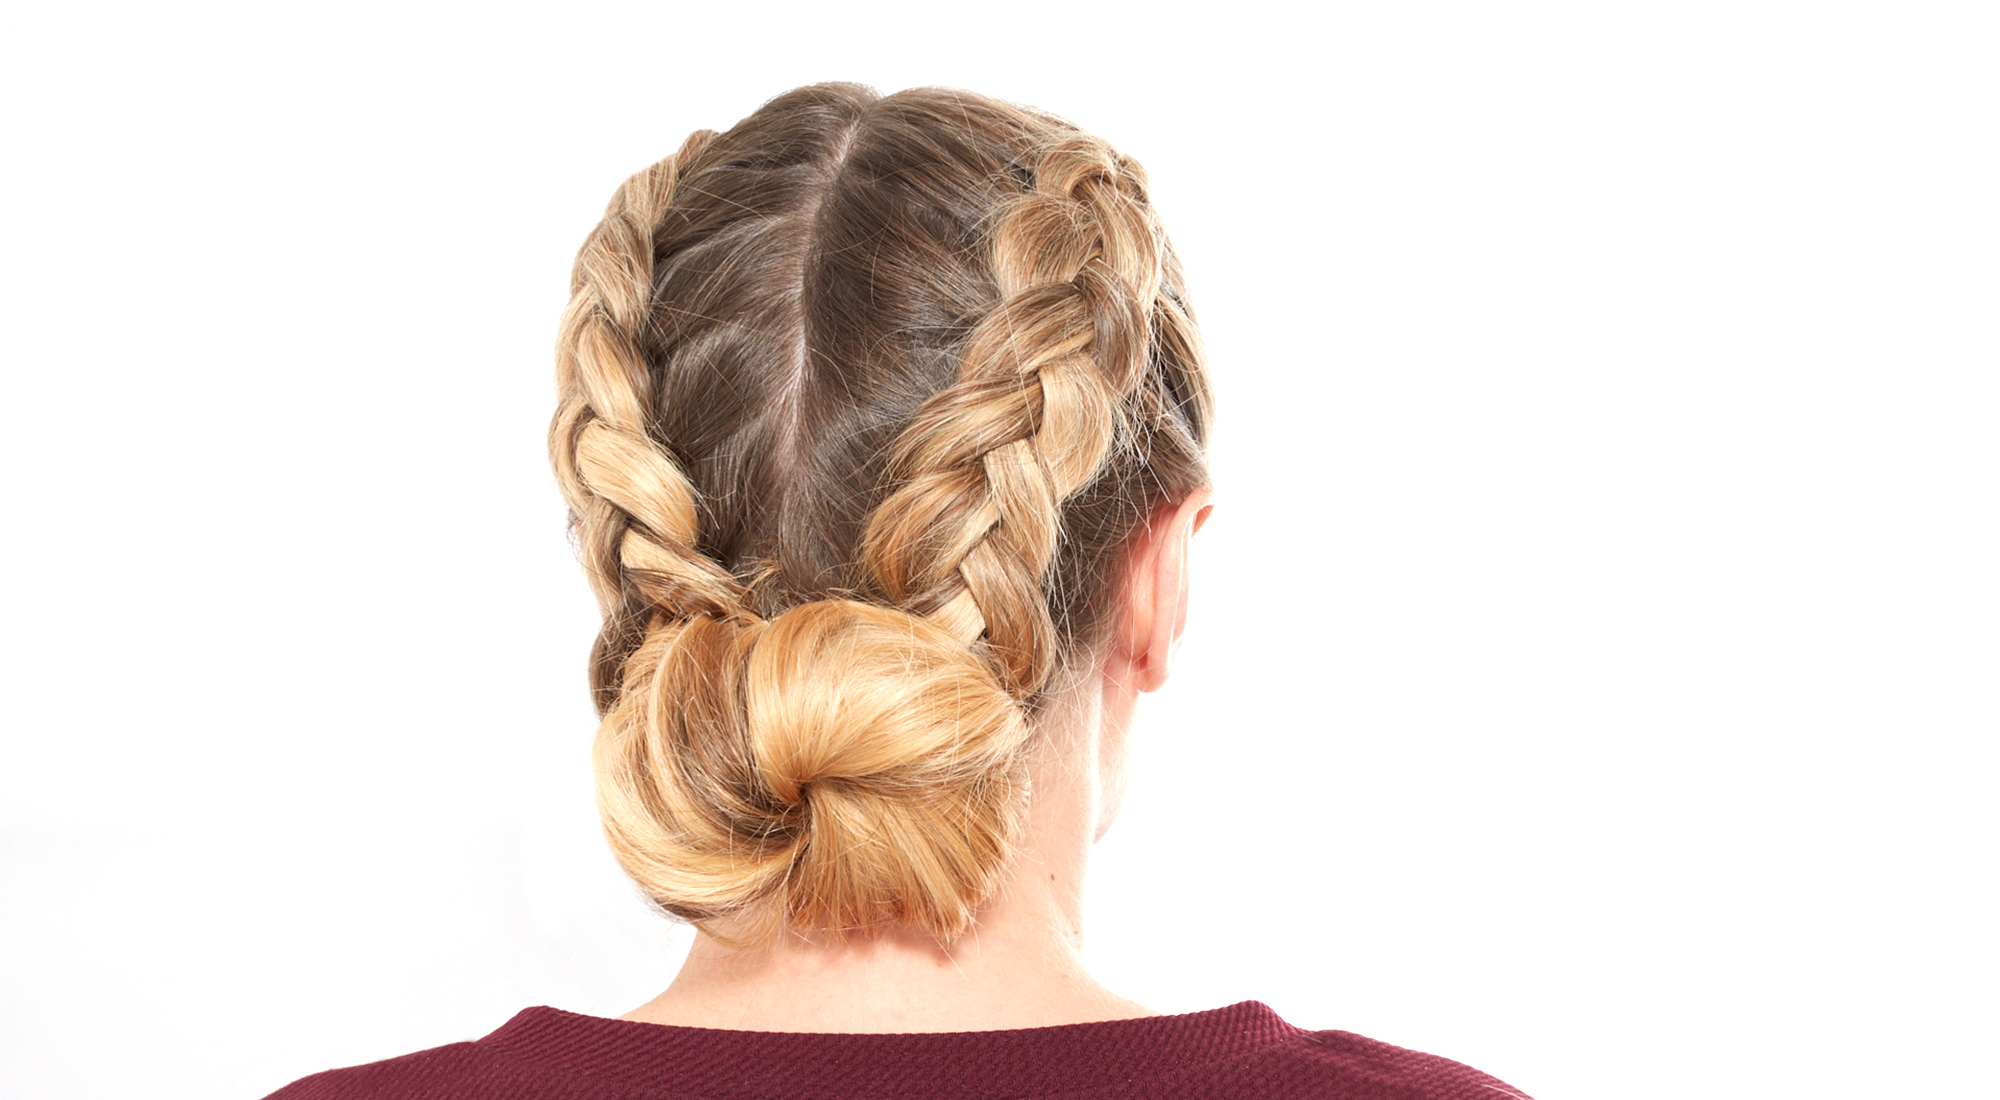 Preferred Braided Space Buns Updo Hairstyles Pertaining To How To Do A Double Dutch Braided Bun (View 14 of 20)